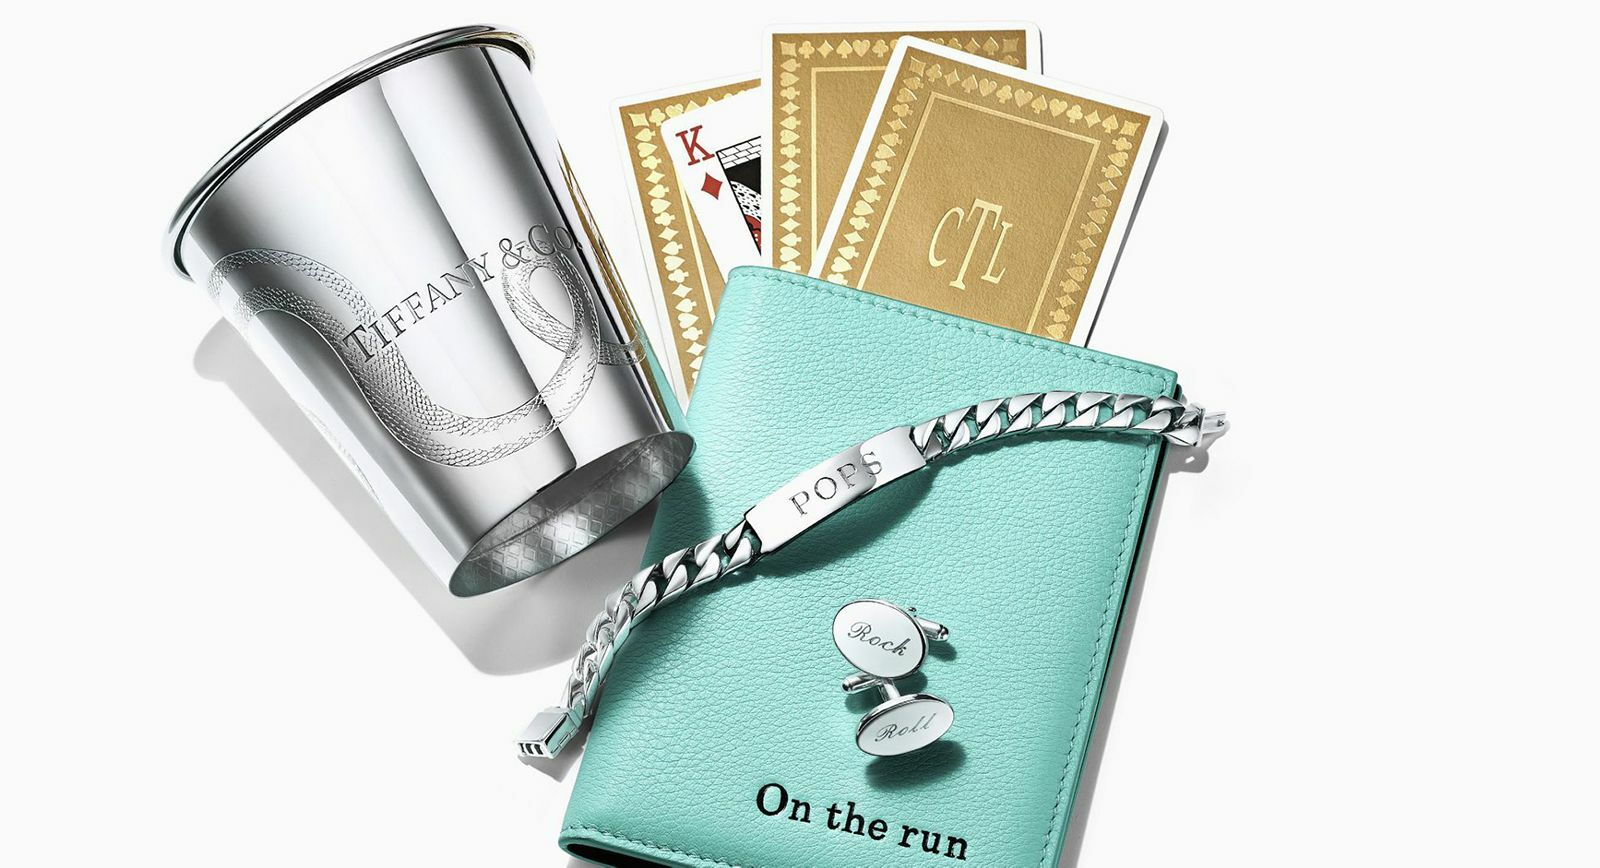 Tiffany&Co. engravable jewellery and gifts